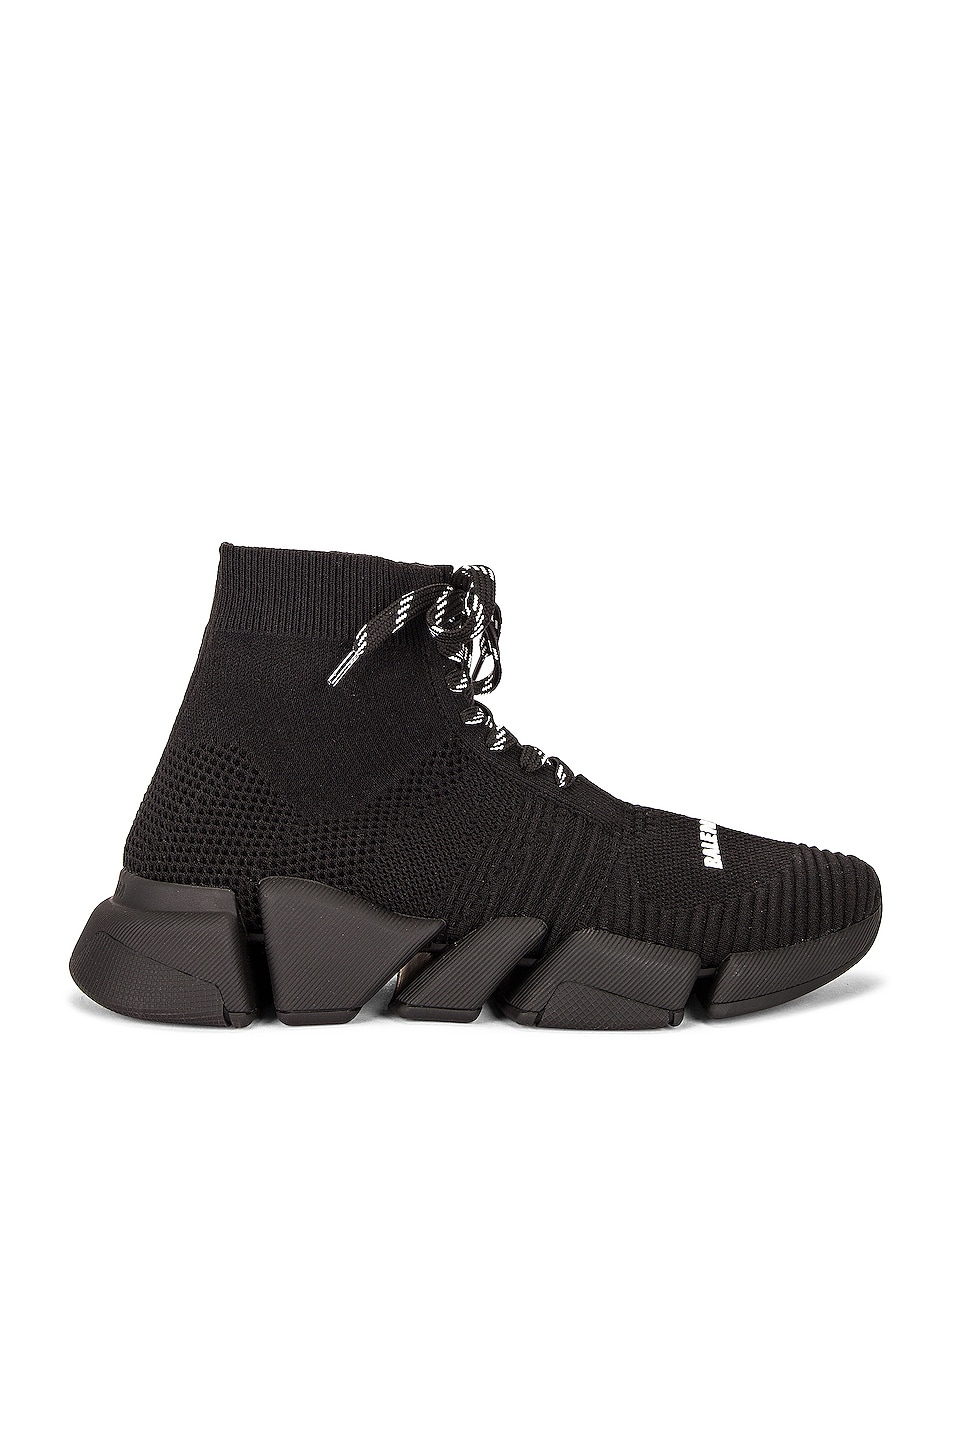 Image 1 of Balenciaga Lace Up Speed 2.0 Sneakers in Black